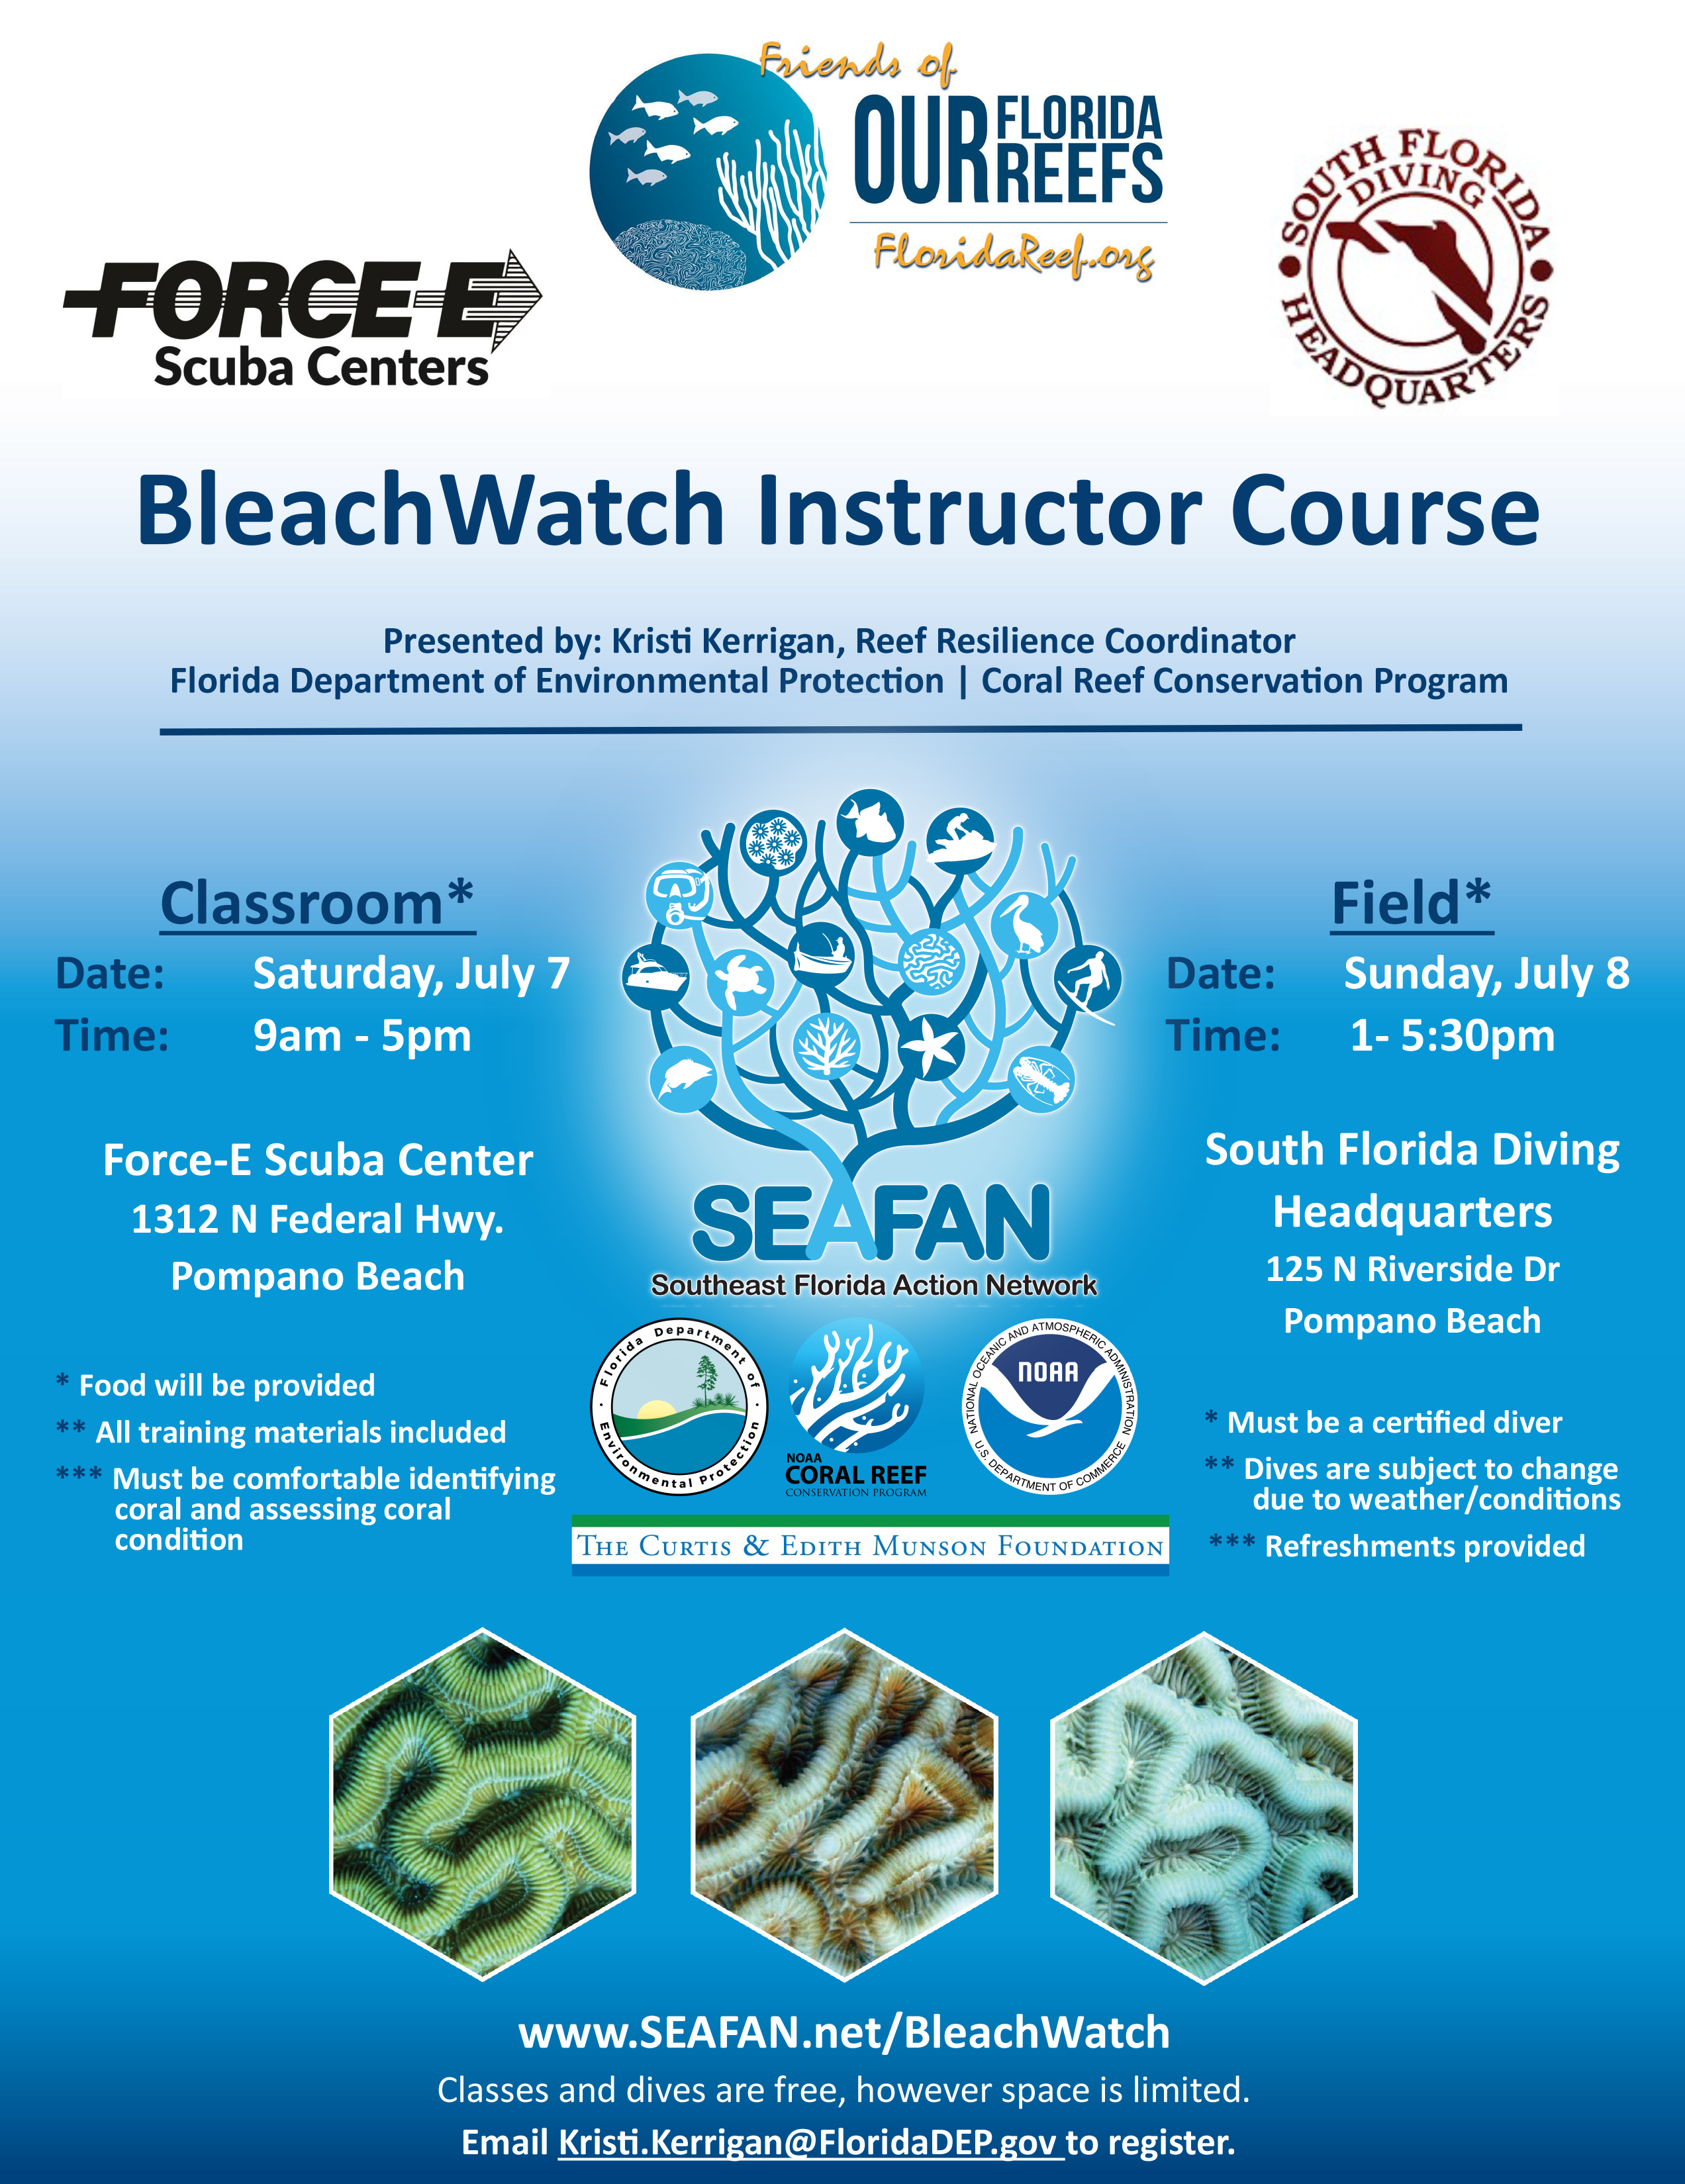 Bleach Watch Instructor Course South Florida Diving Headquarters